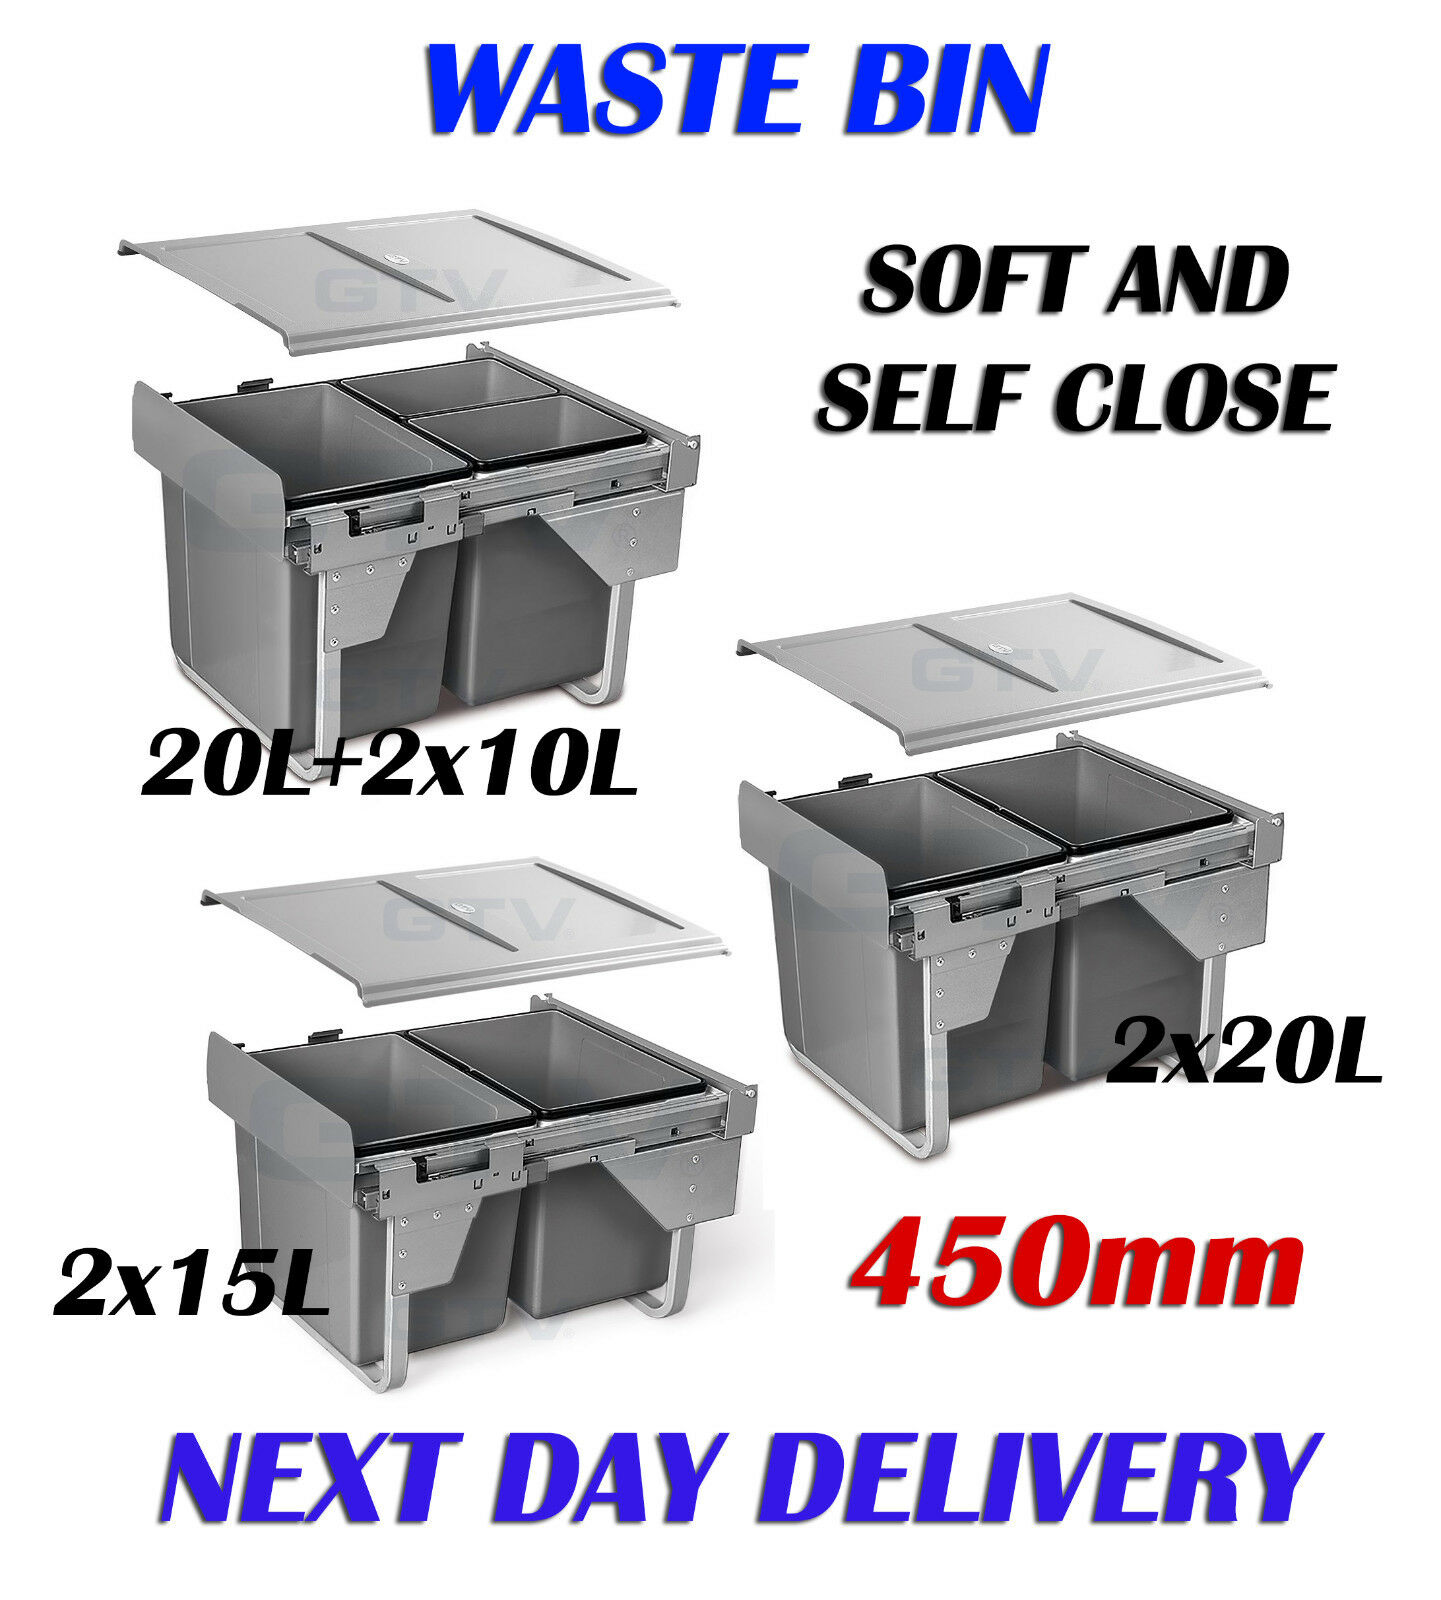 CARGO PULL OUT RECYCLE BIN KITCHEN HINGED  DOOR  BIN SOFT AND SELF CLOSE 450mm